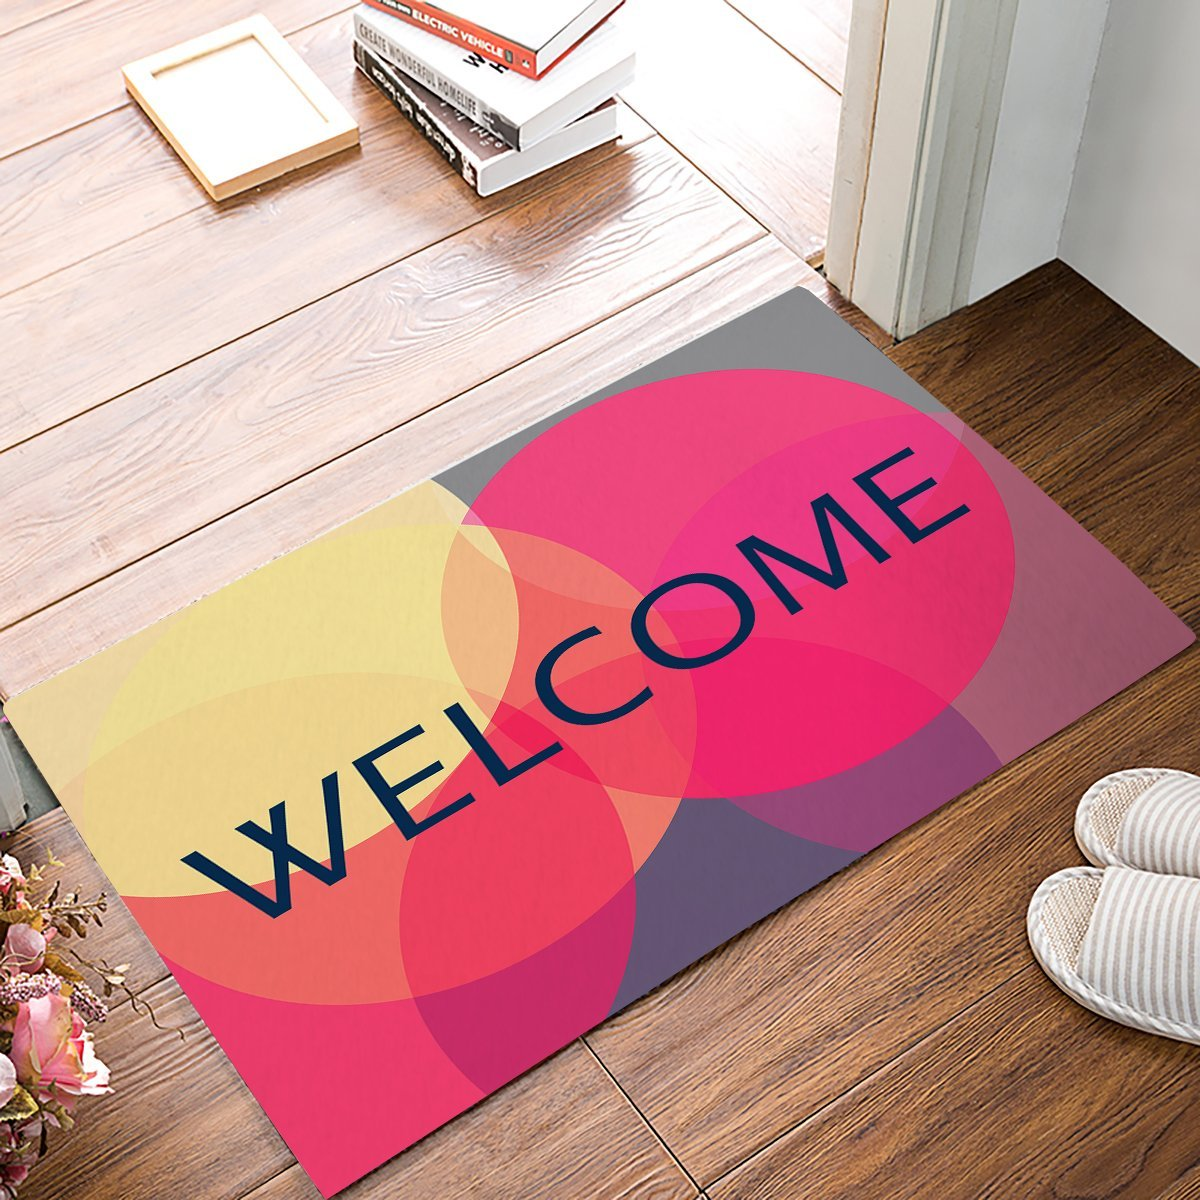 Neon Light Color Blocked Circular Geometric Welcome Door Mats Kitchen Floor Bath Entrance Rug Mat Rubber Non Slip